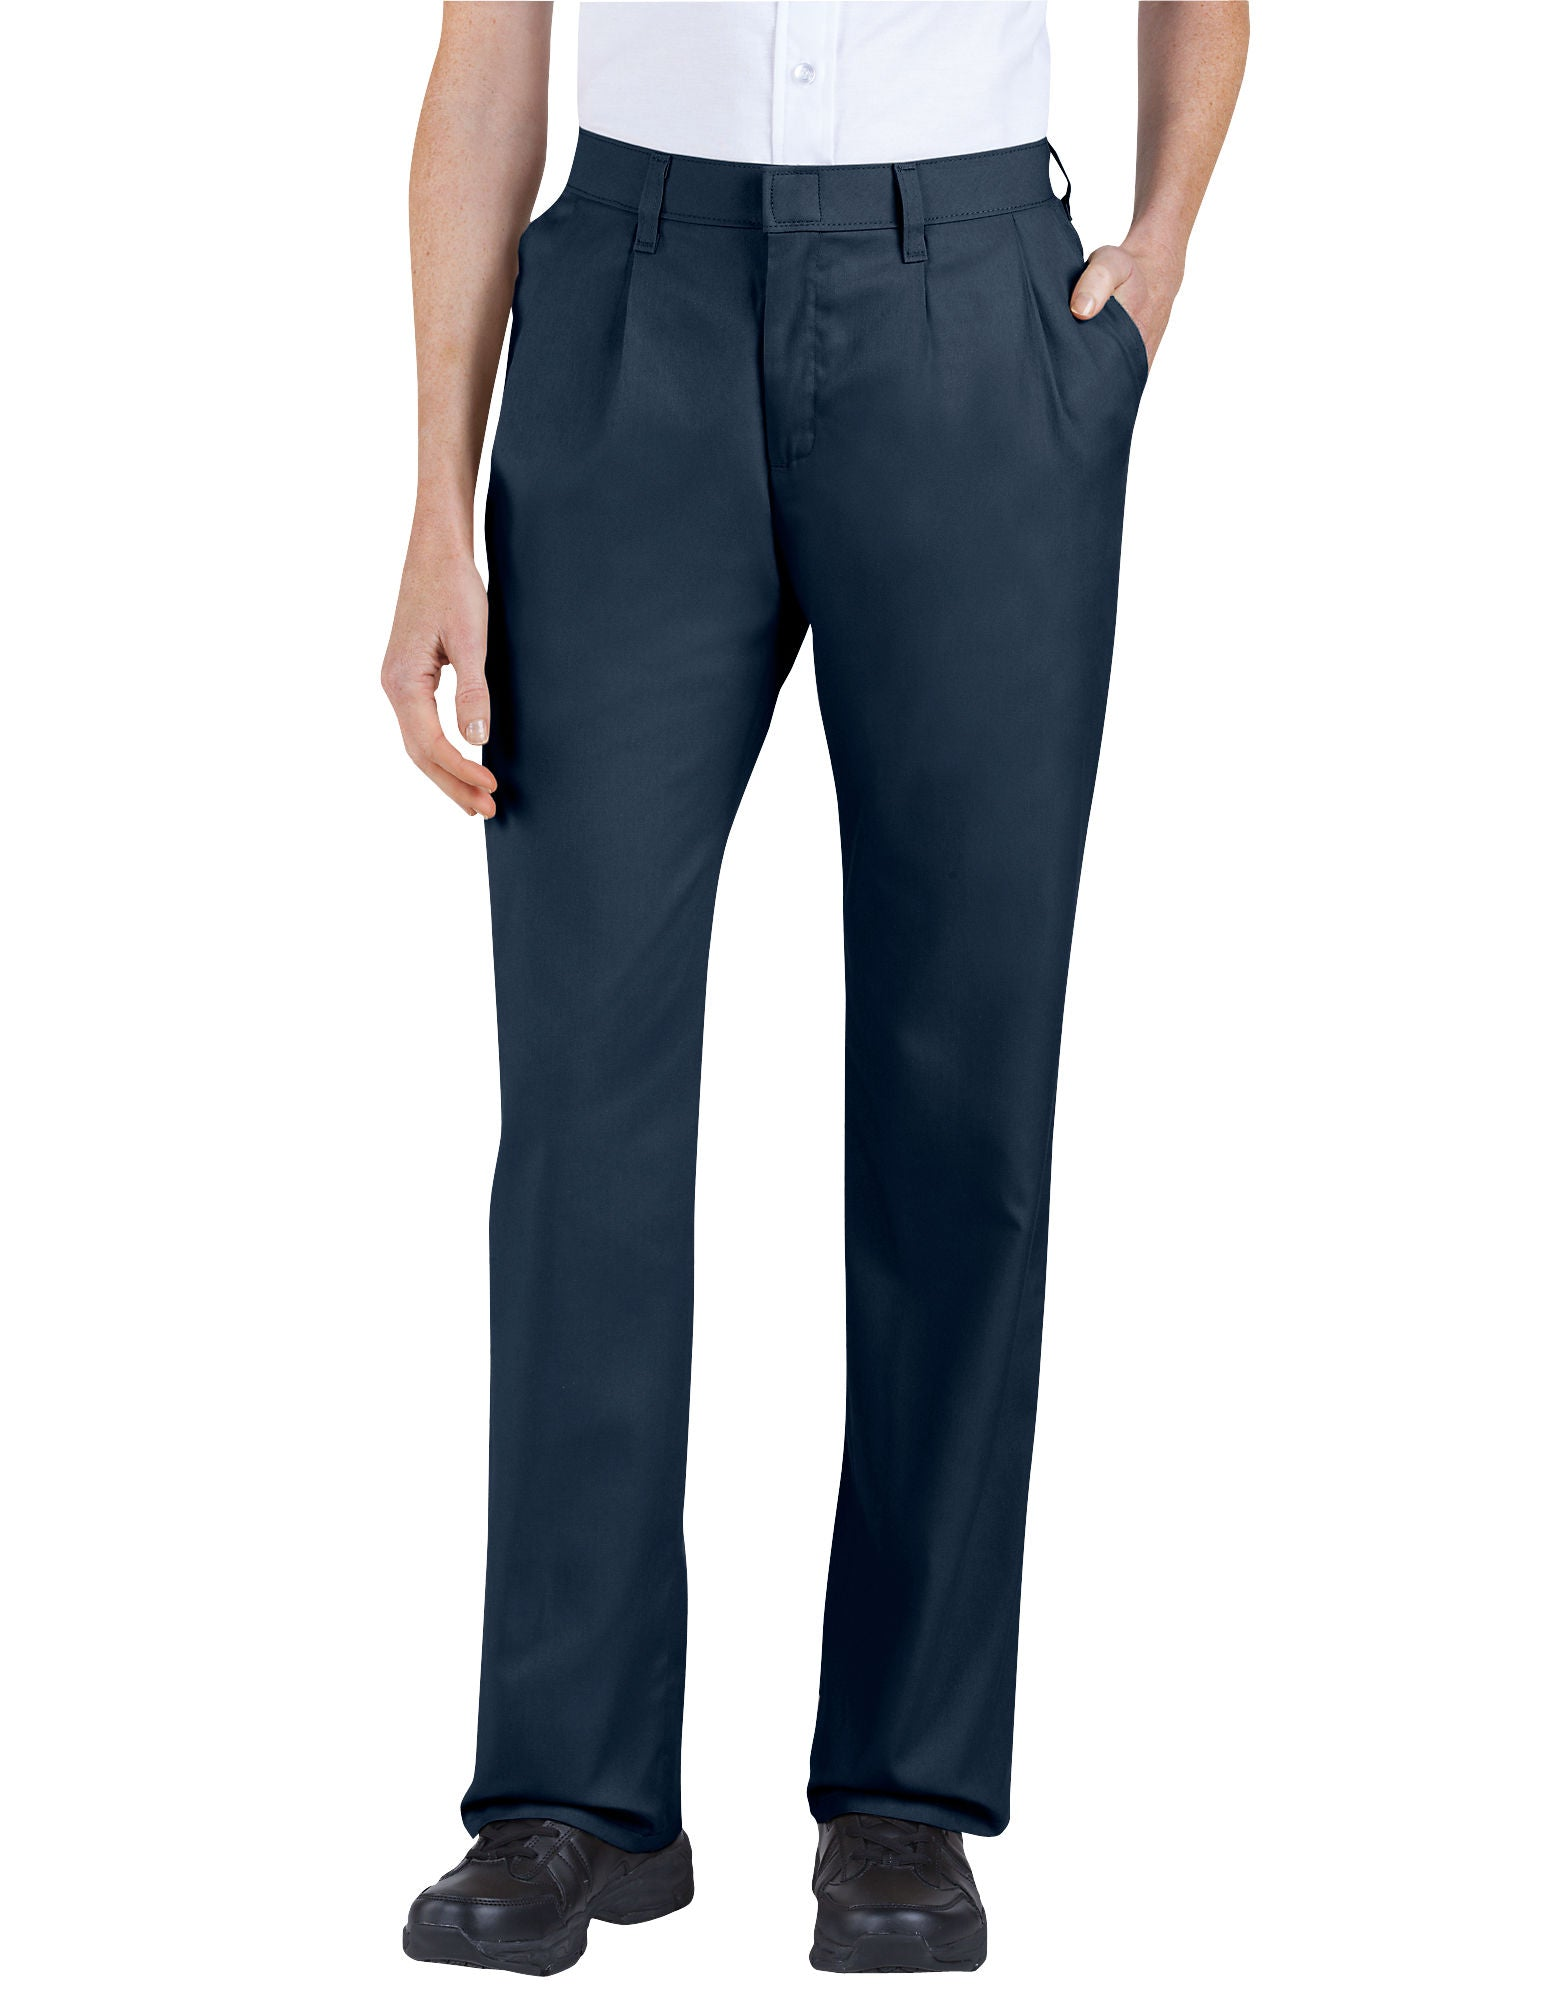 d1d23d65 DIC-FP220 - Dickies Womens Relaxed Fit Straight Leg Pleated Front Pants